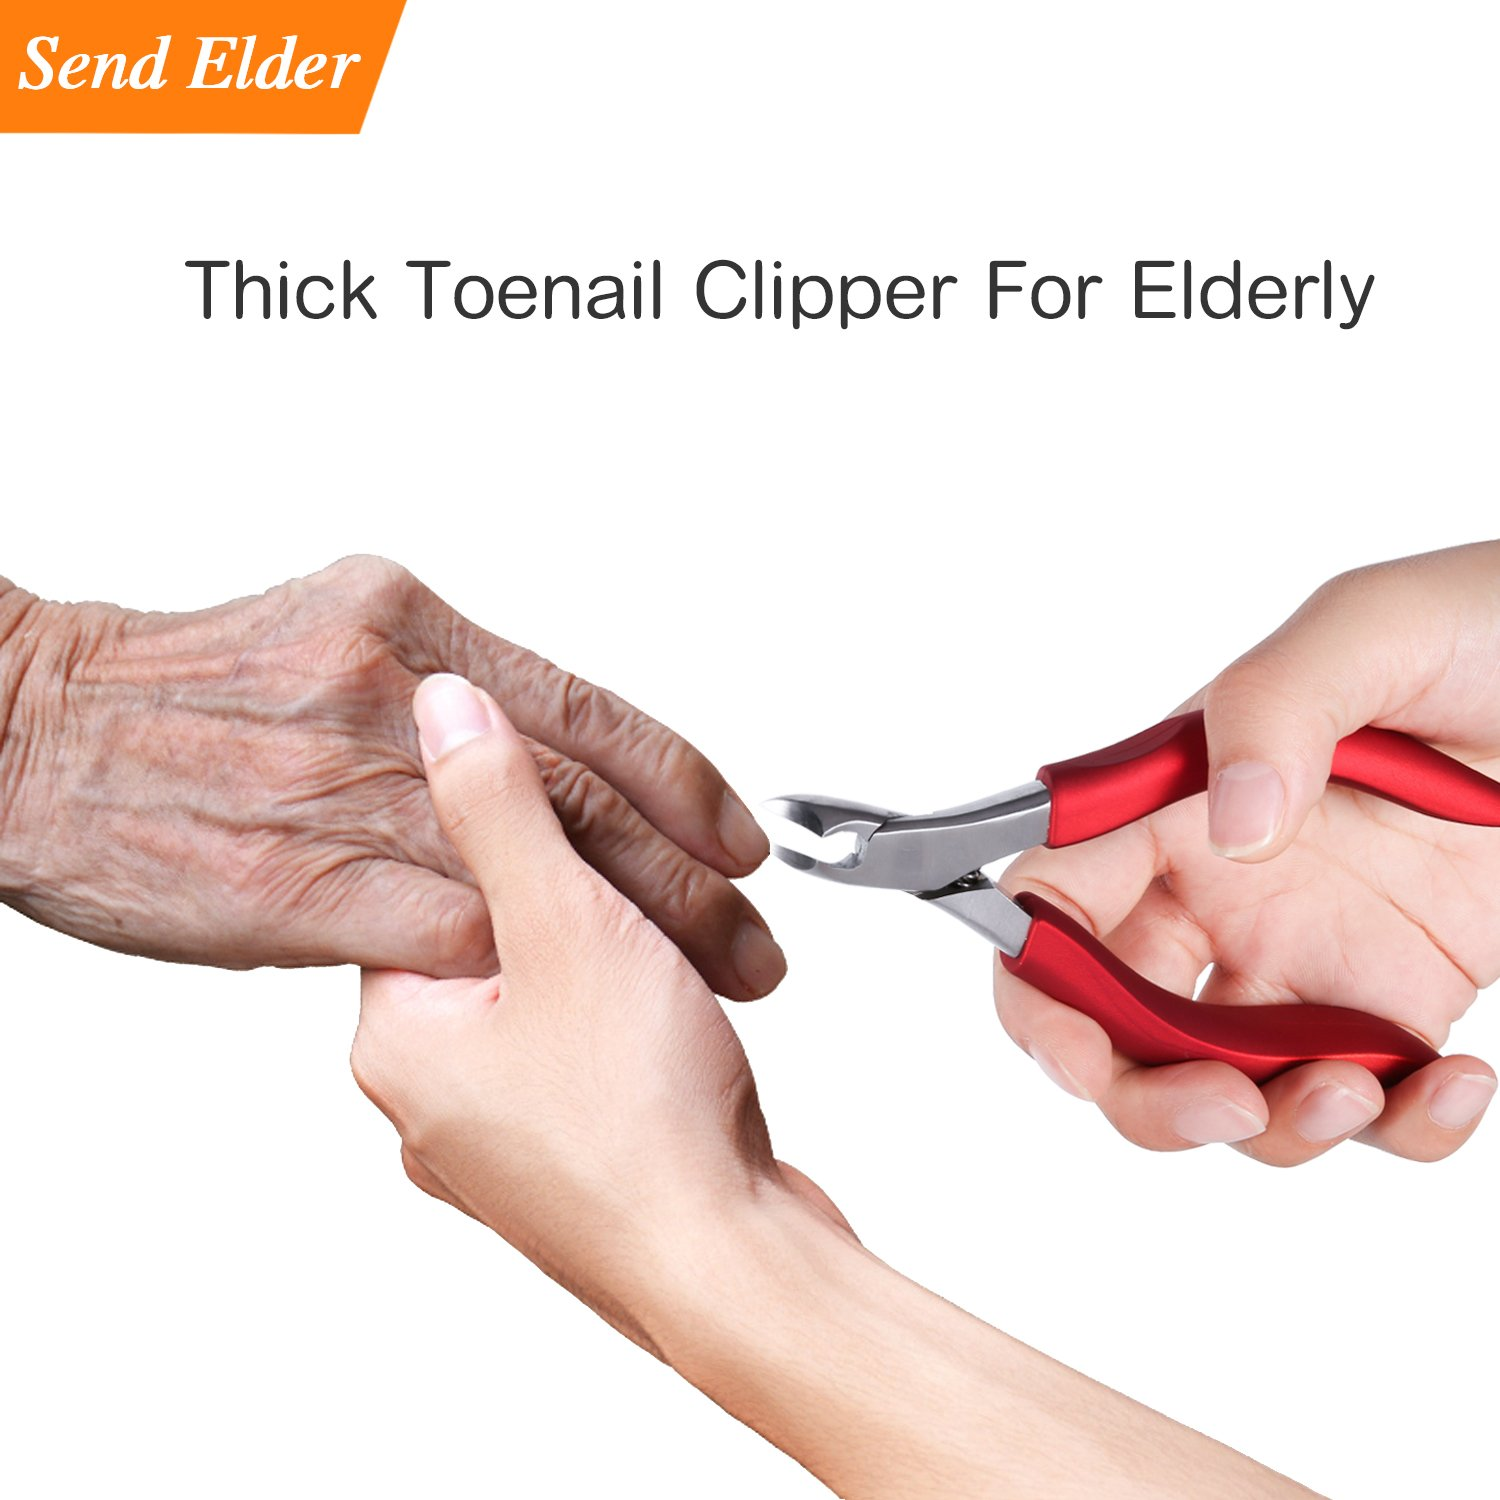 Amazon.com : Ingrown Toenail clippers, Used For Thick Toenails ...